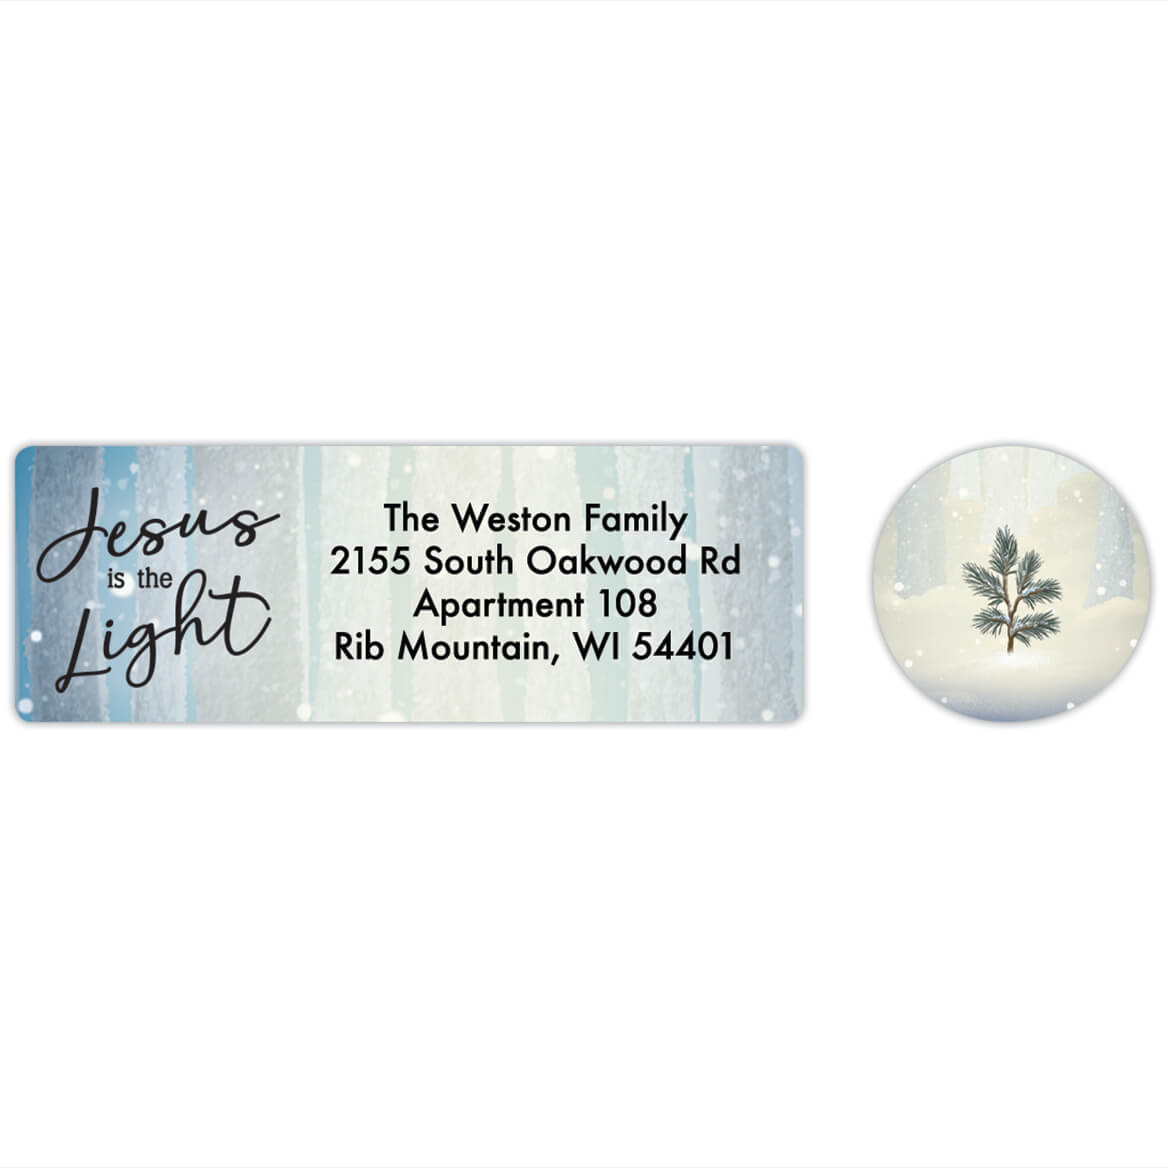 Personalized He is the Light Labels & Seals 20-368275